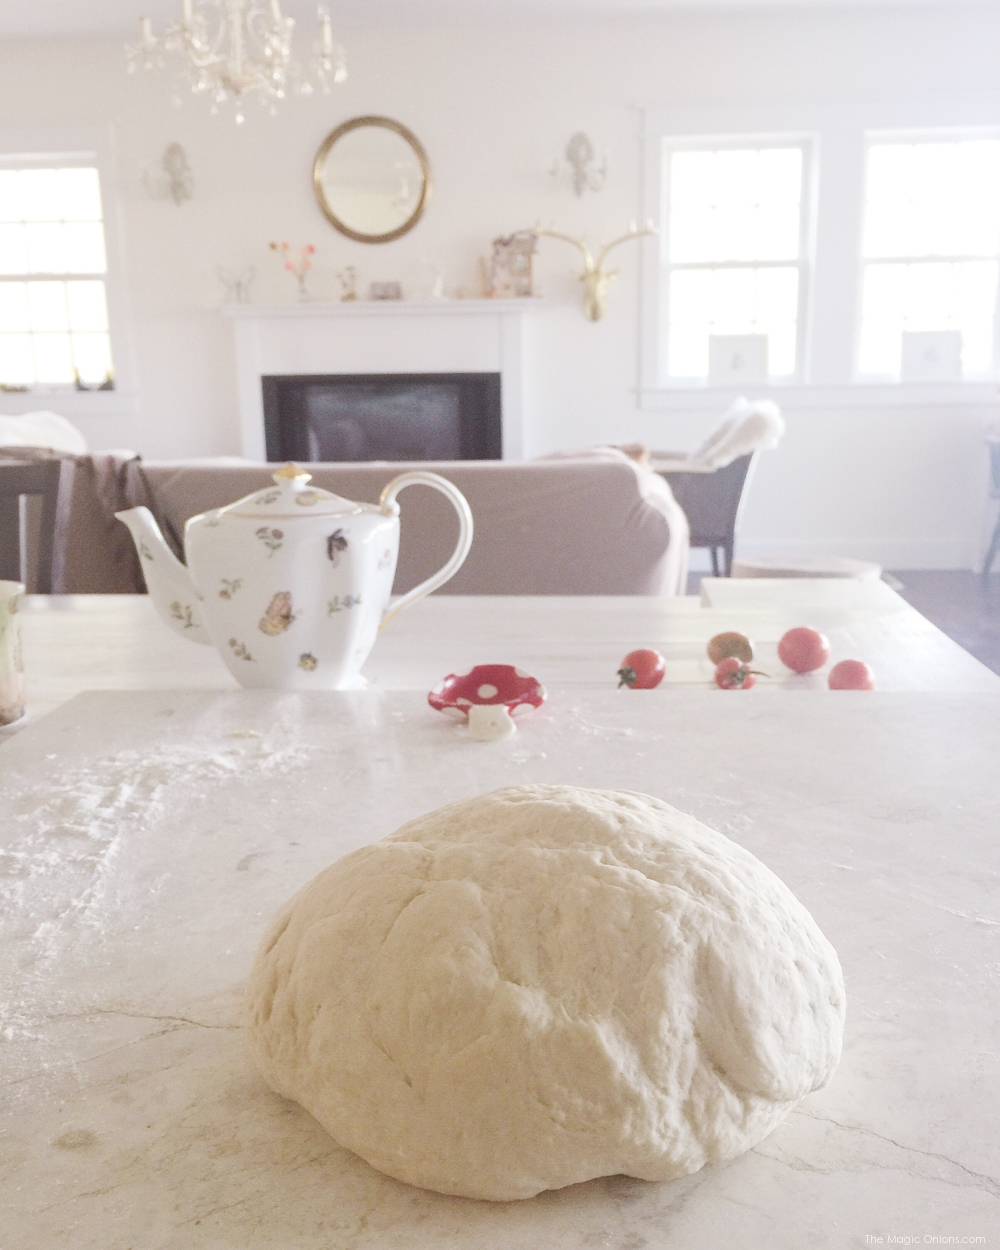 Baking Bread photo from The Magic Onions Blog